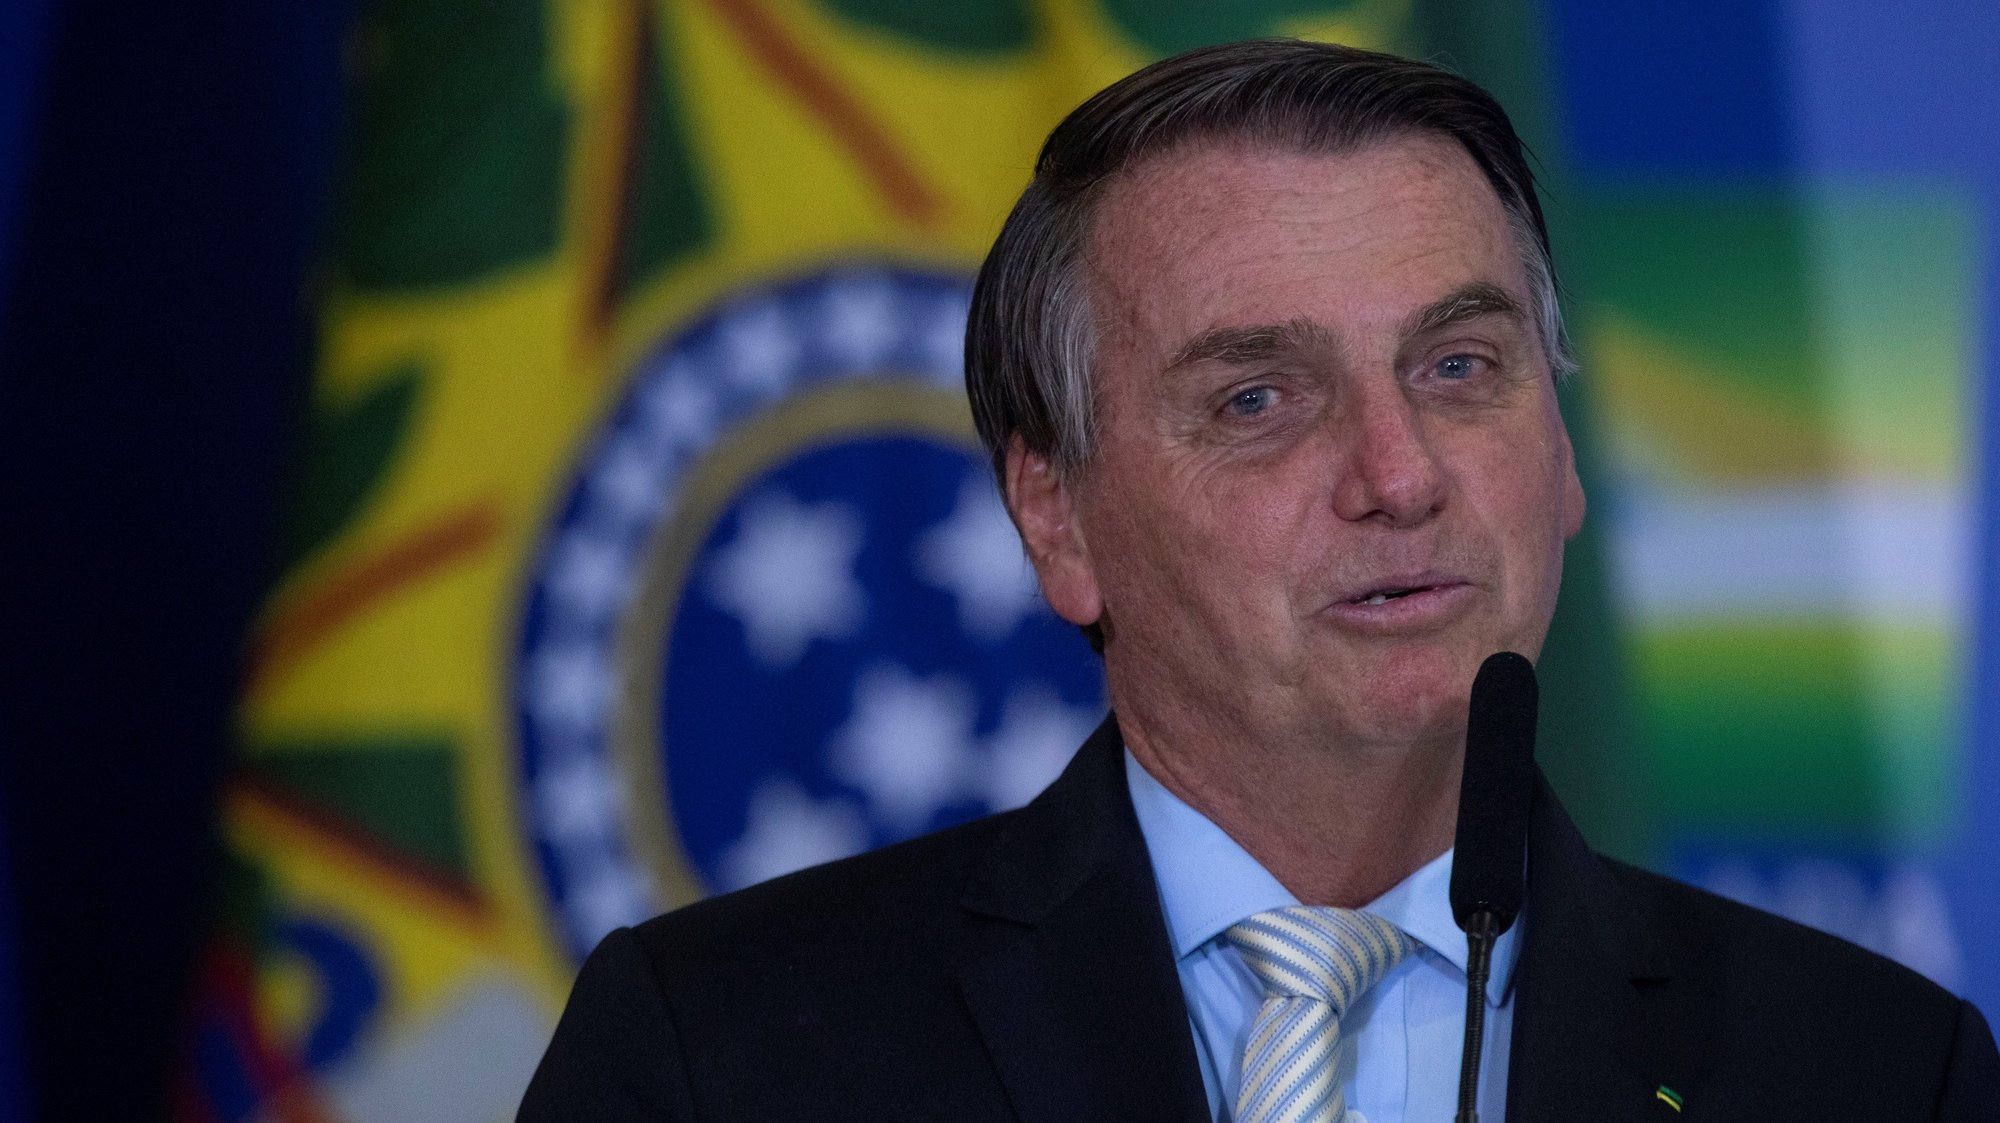 epa09034882 The President of Brazil Jair Bolsonaro during the ceremony of approval of the Central Bank Autonomy Law, in Brasilia, Brazil, 24 February 2021. Brazilian President Jair Bolsonaro renewed his Government with changes in two ministries and sanctioned a law that gives autonomy to the Central Bank, which is part of his objective of liberalizing the country's economy.  EPA/Joedson Alves